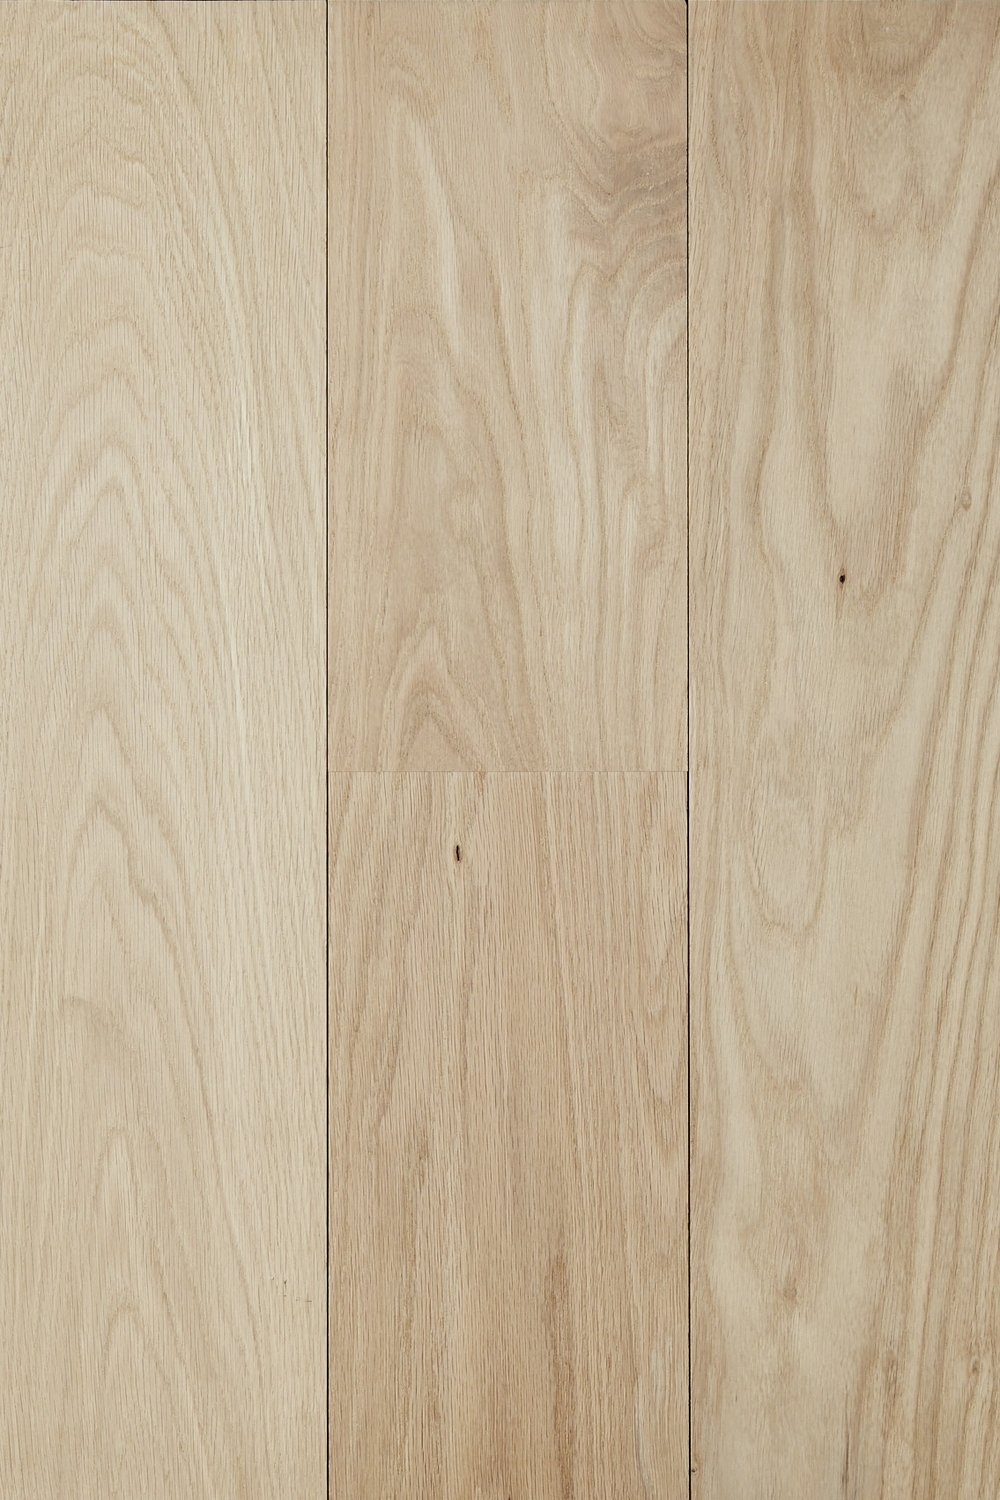 Unfinished_WhiteOak_FlatSawn.jpg